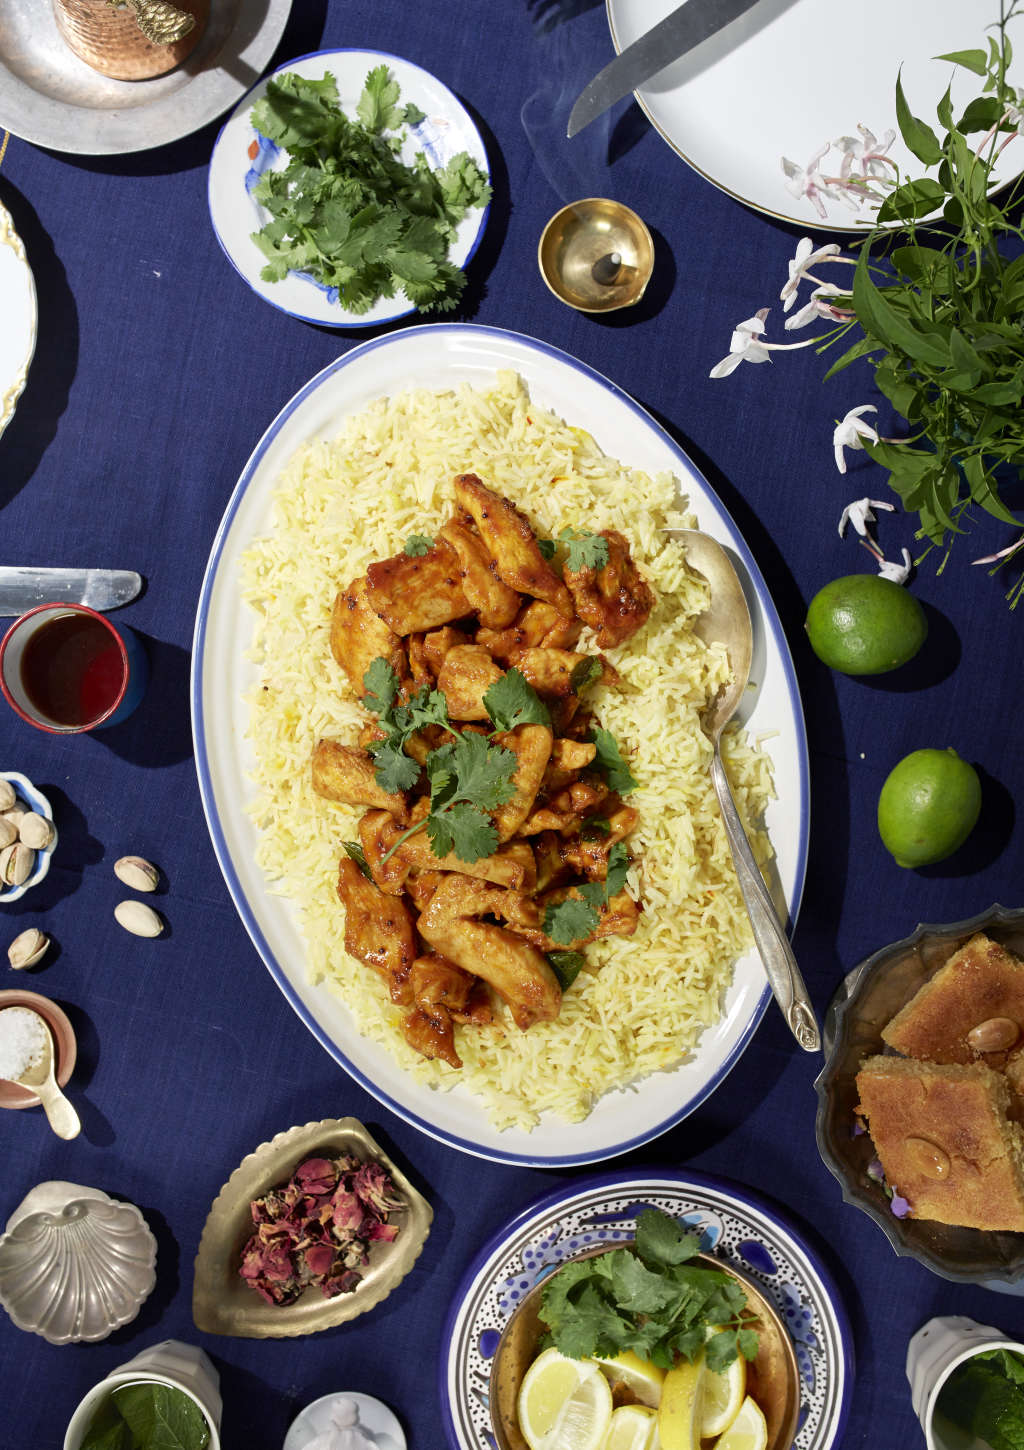 35 Delicious & Filling Dinner Ideas for Iftar